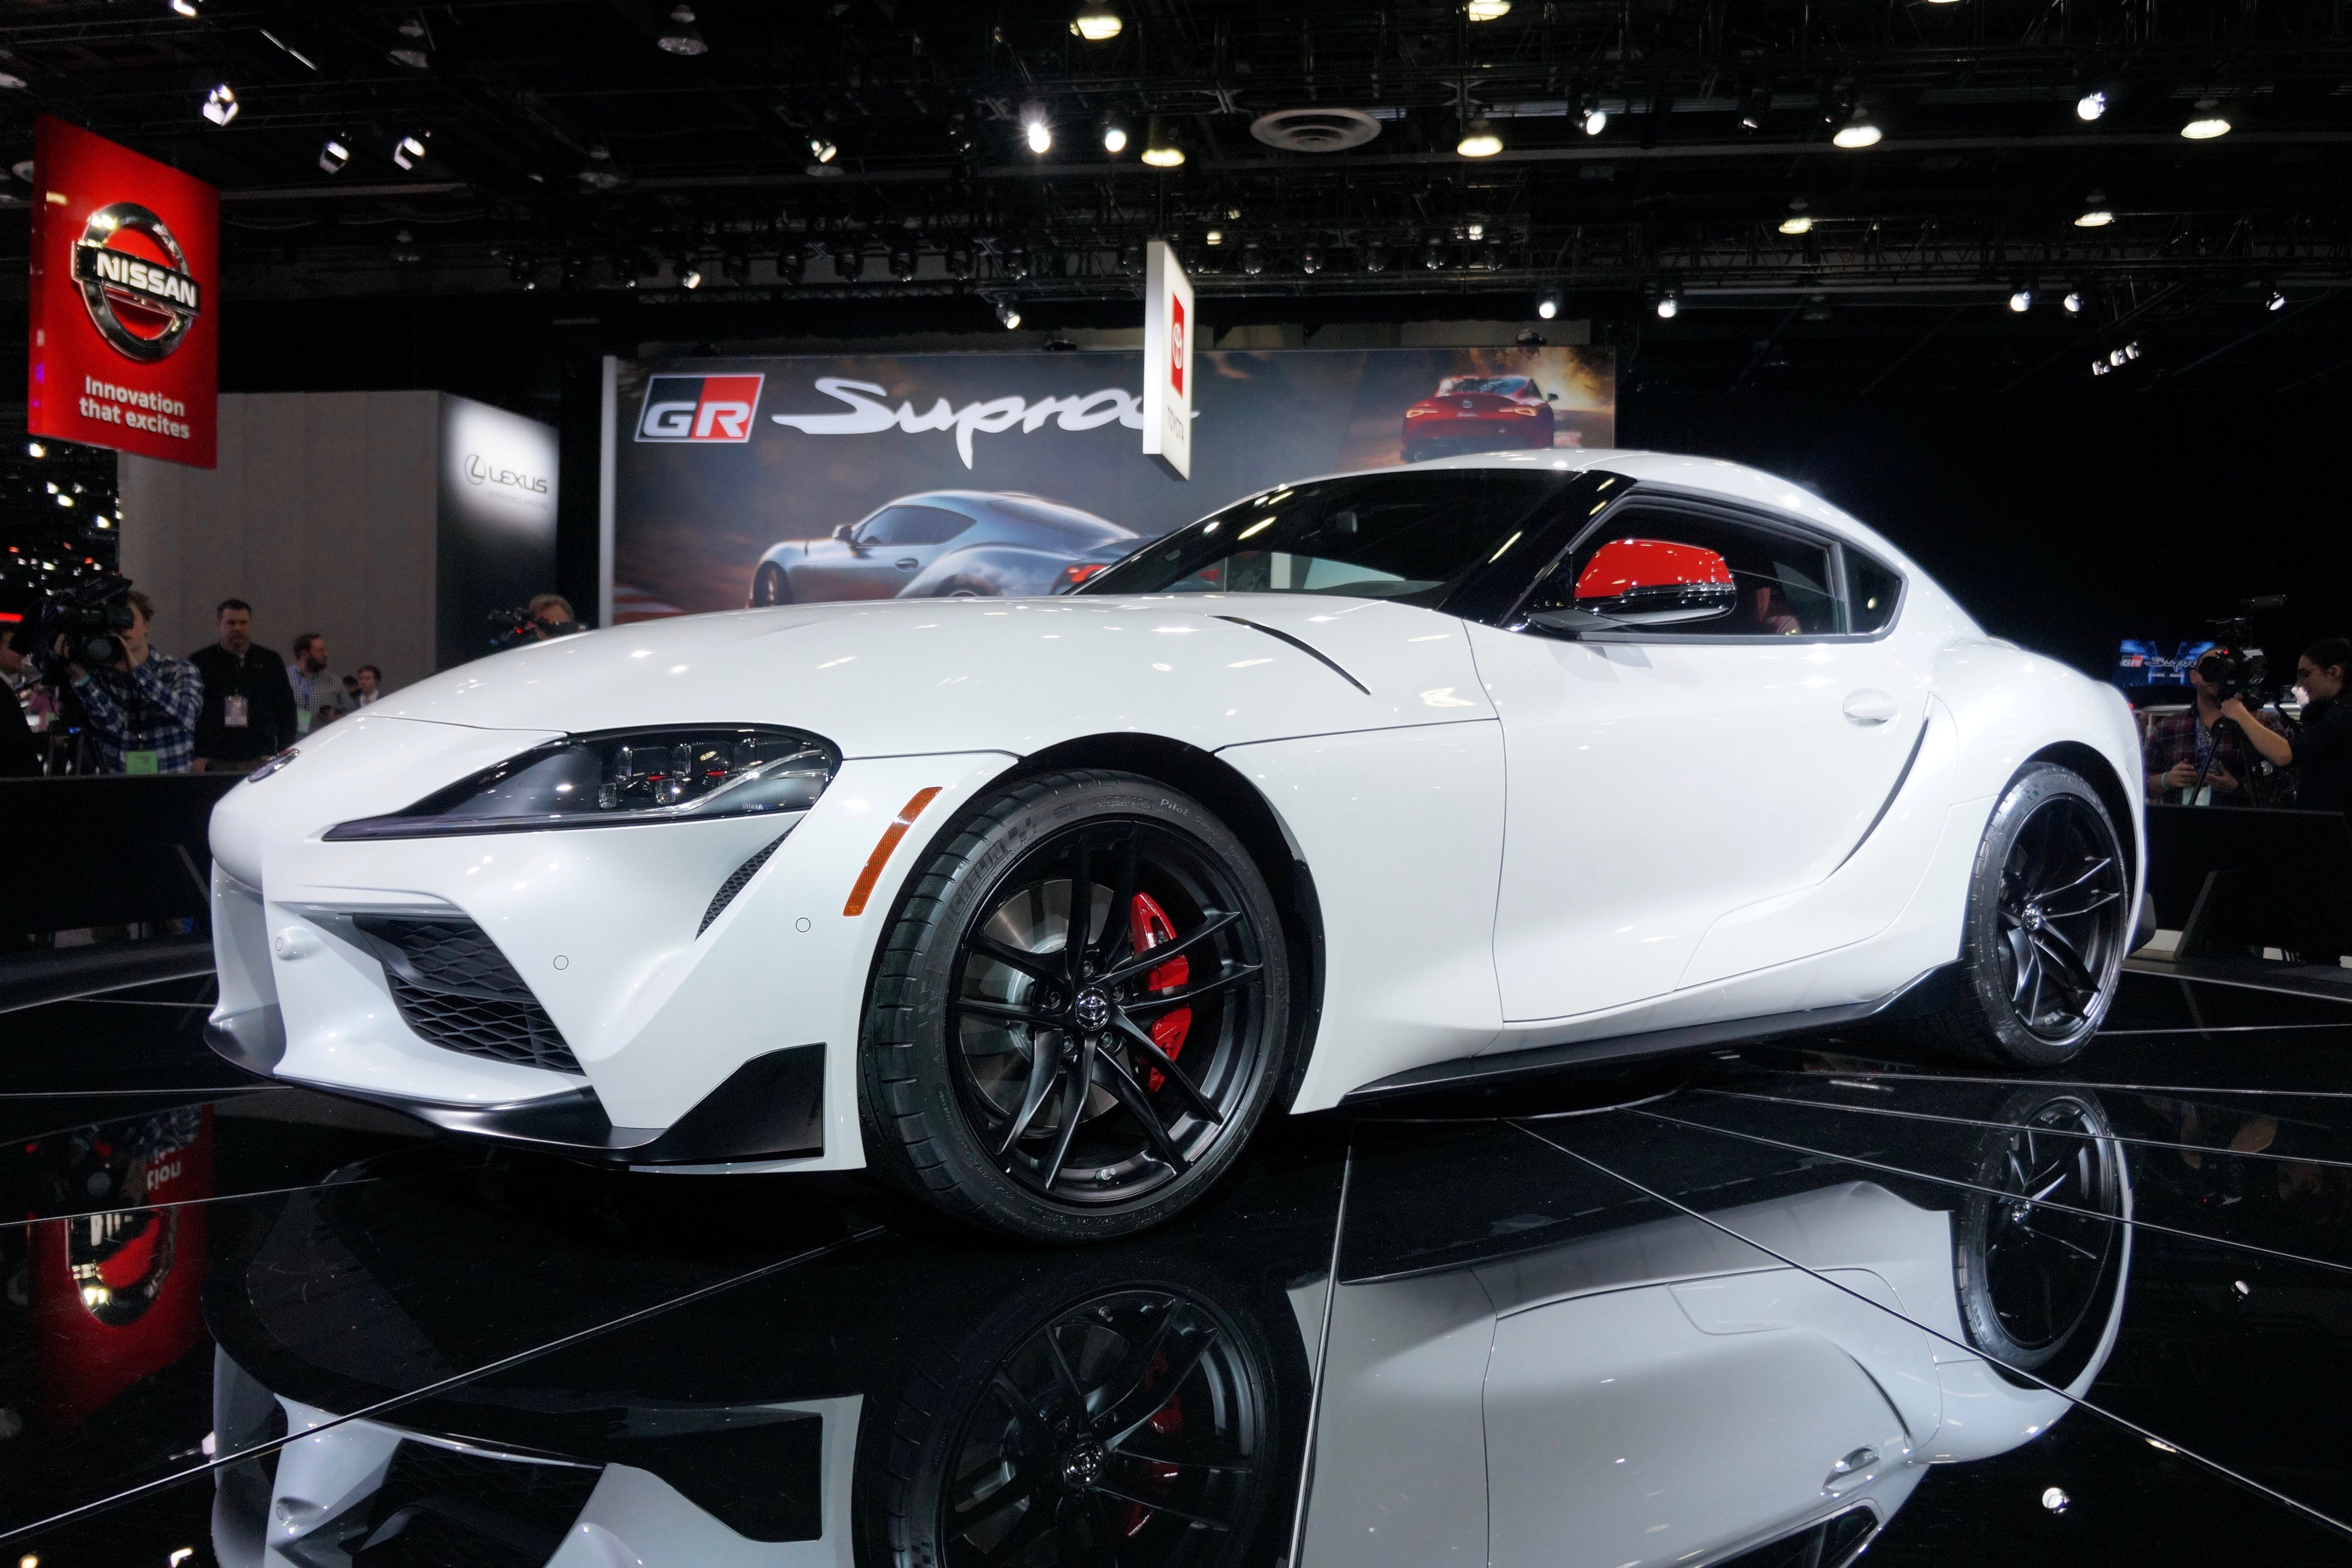 Toyota GR Supra 4k photo